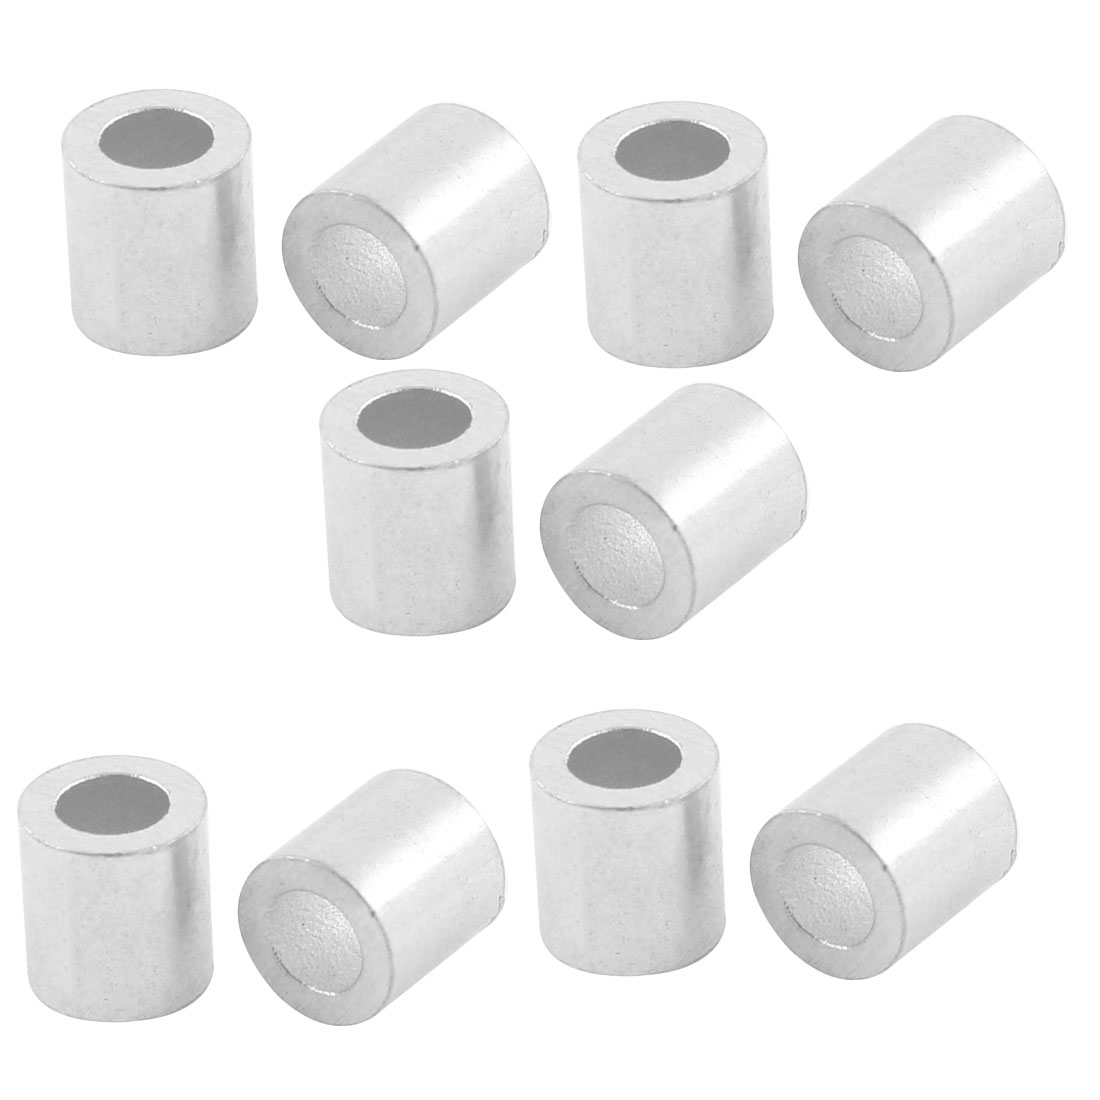 10pcs Aluminum Cable Stops Sleeves for 4mm Wire Rope Swage Clip